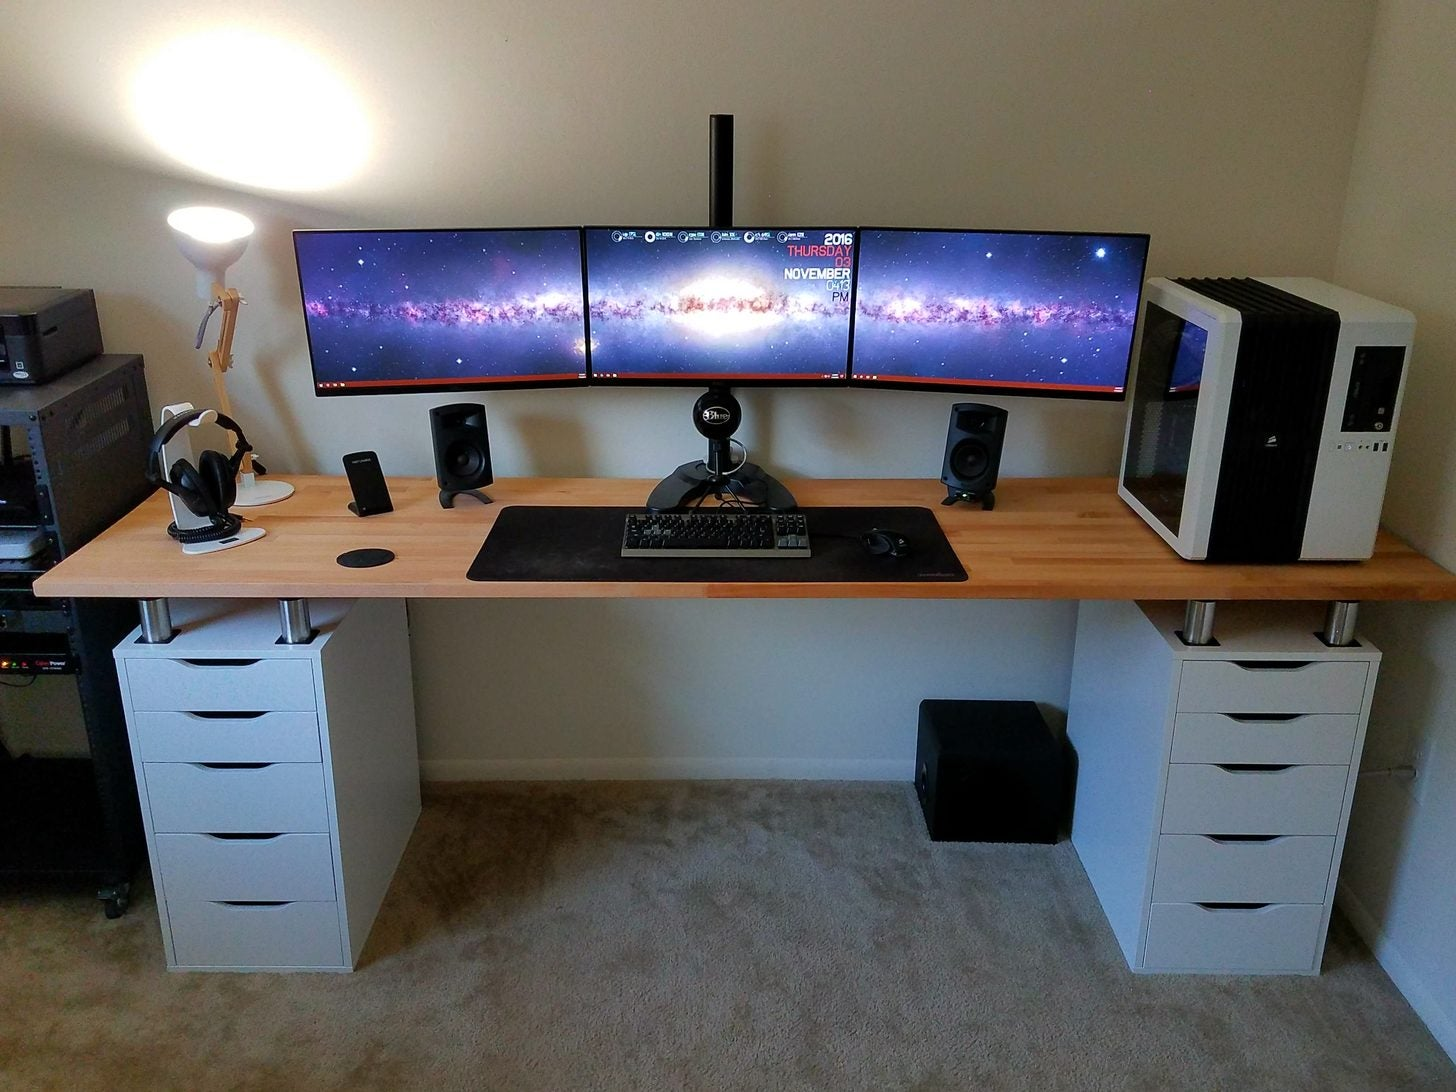 The Triple Monitor Dual Desk Workspace